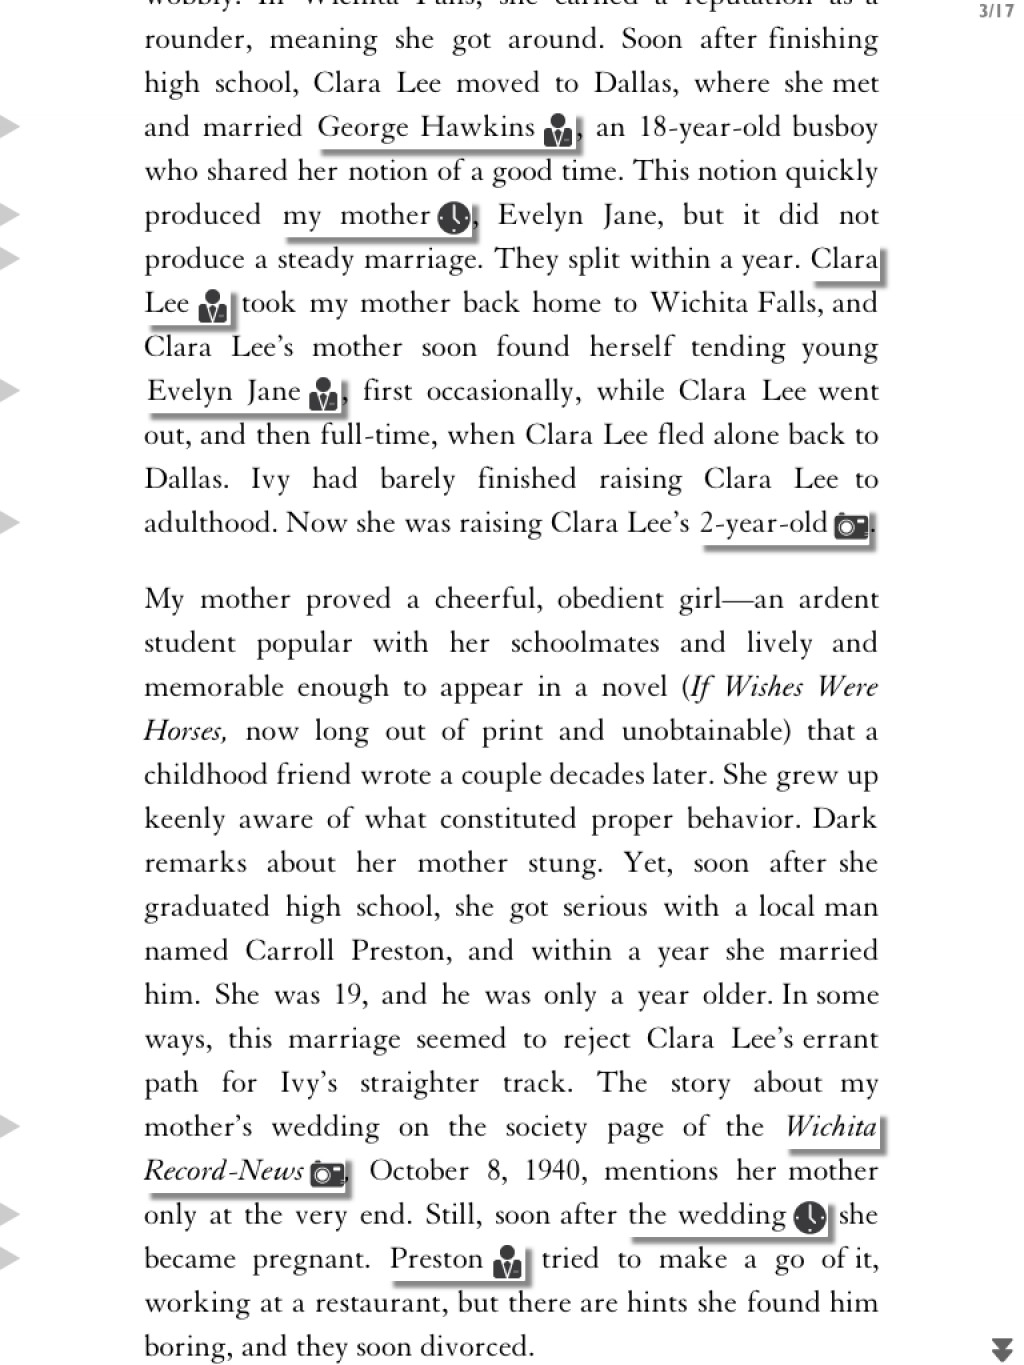 005 Essay My Father Hero Example On Fathermy About L Unusual Parents Superhero Large